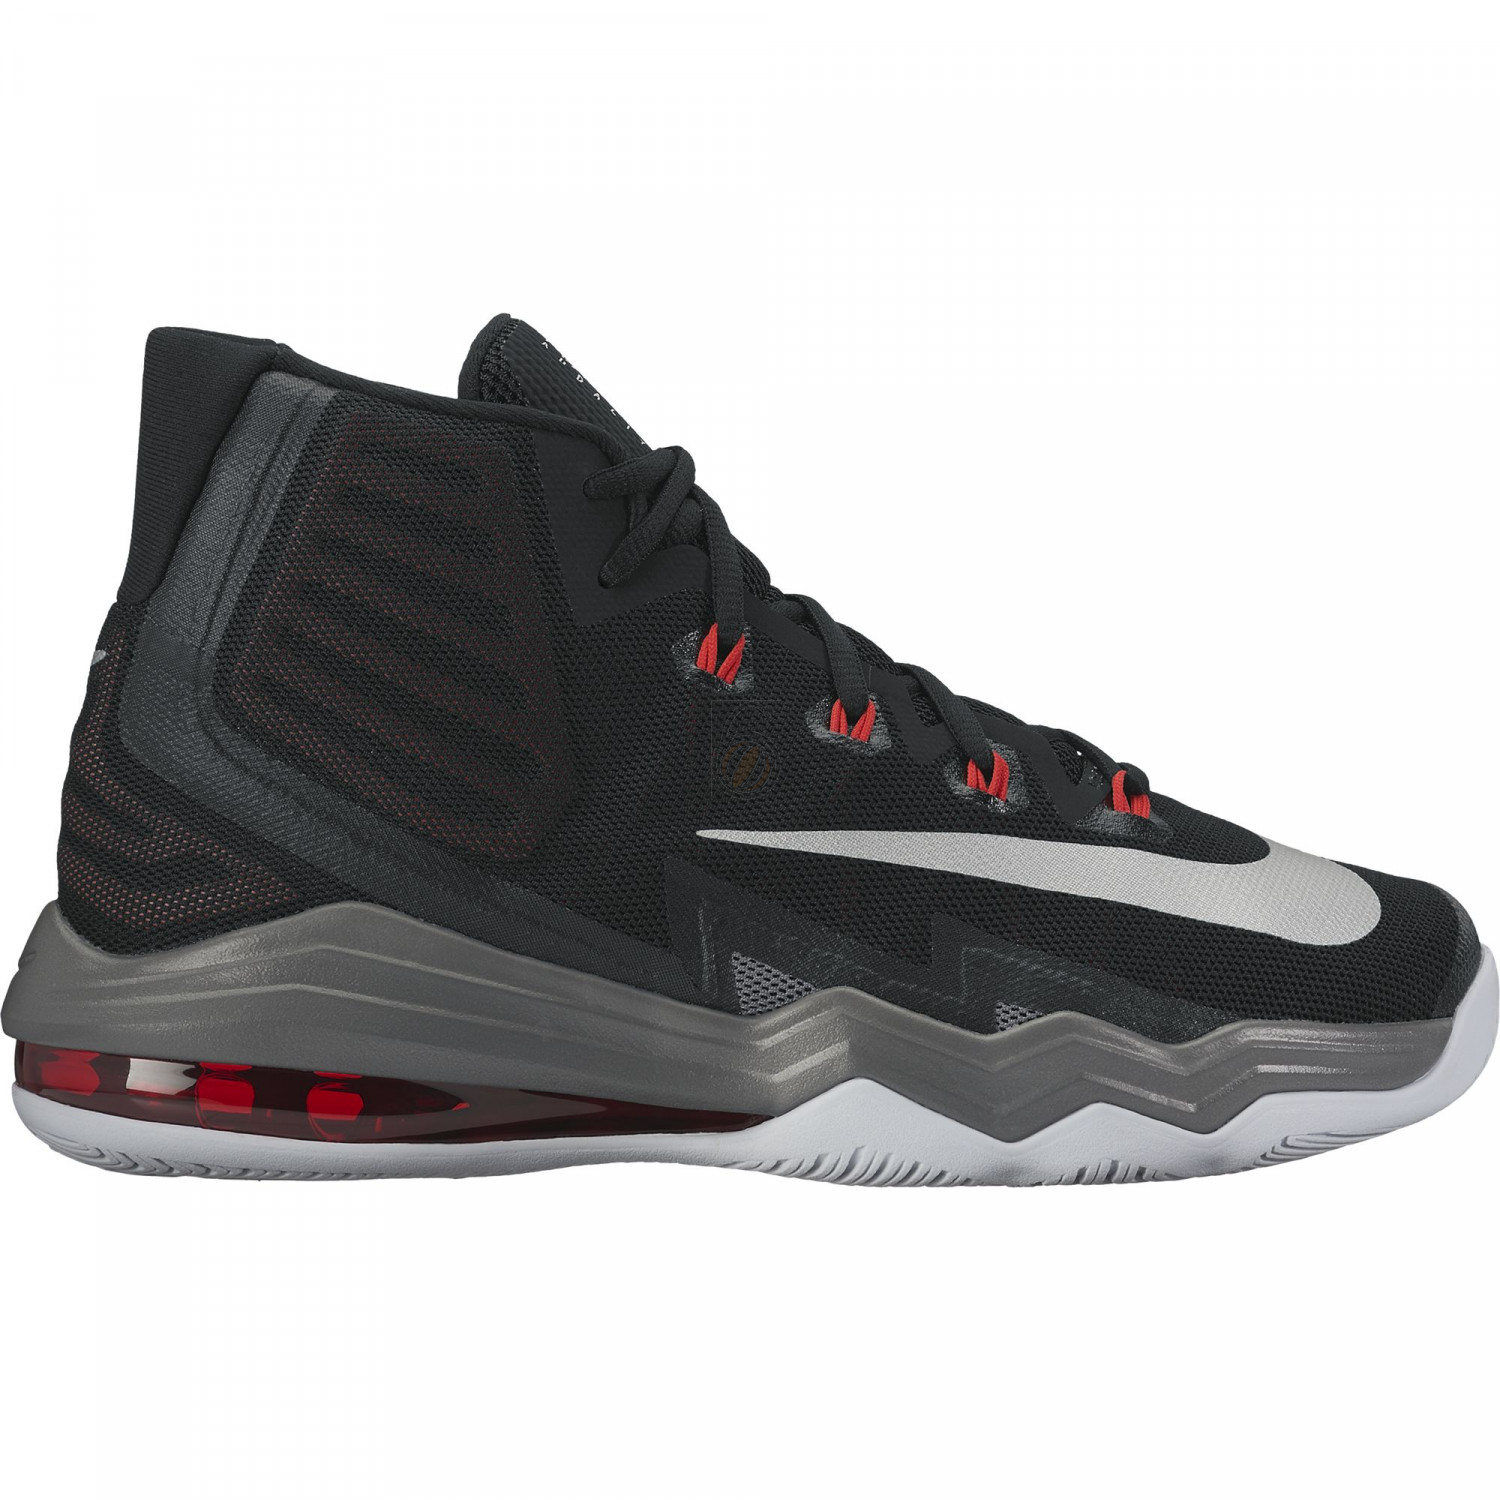 check-out 35e95 a119f Nike Air Max Basketball Shoes : Buy Nike Sneakers & Shoes ...